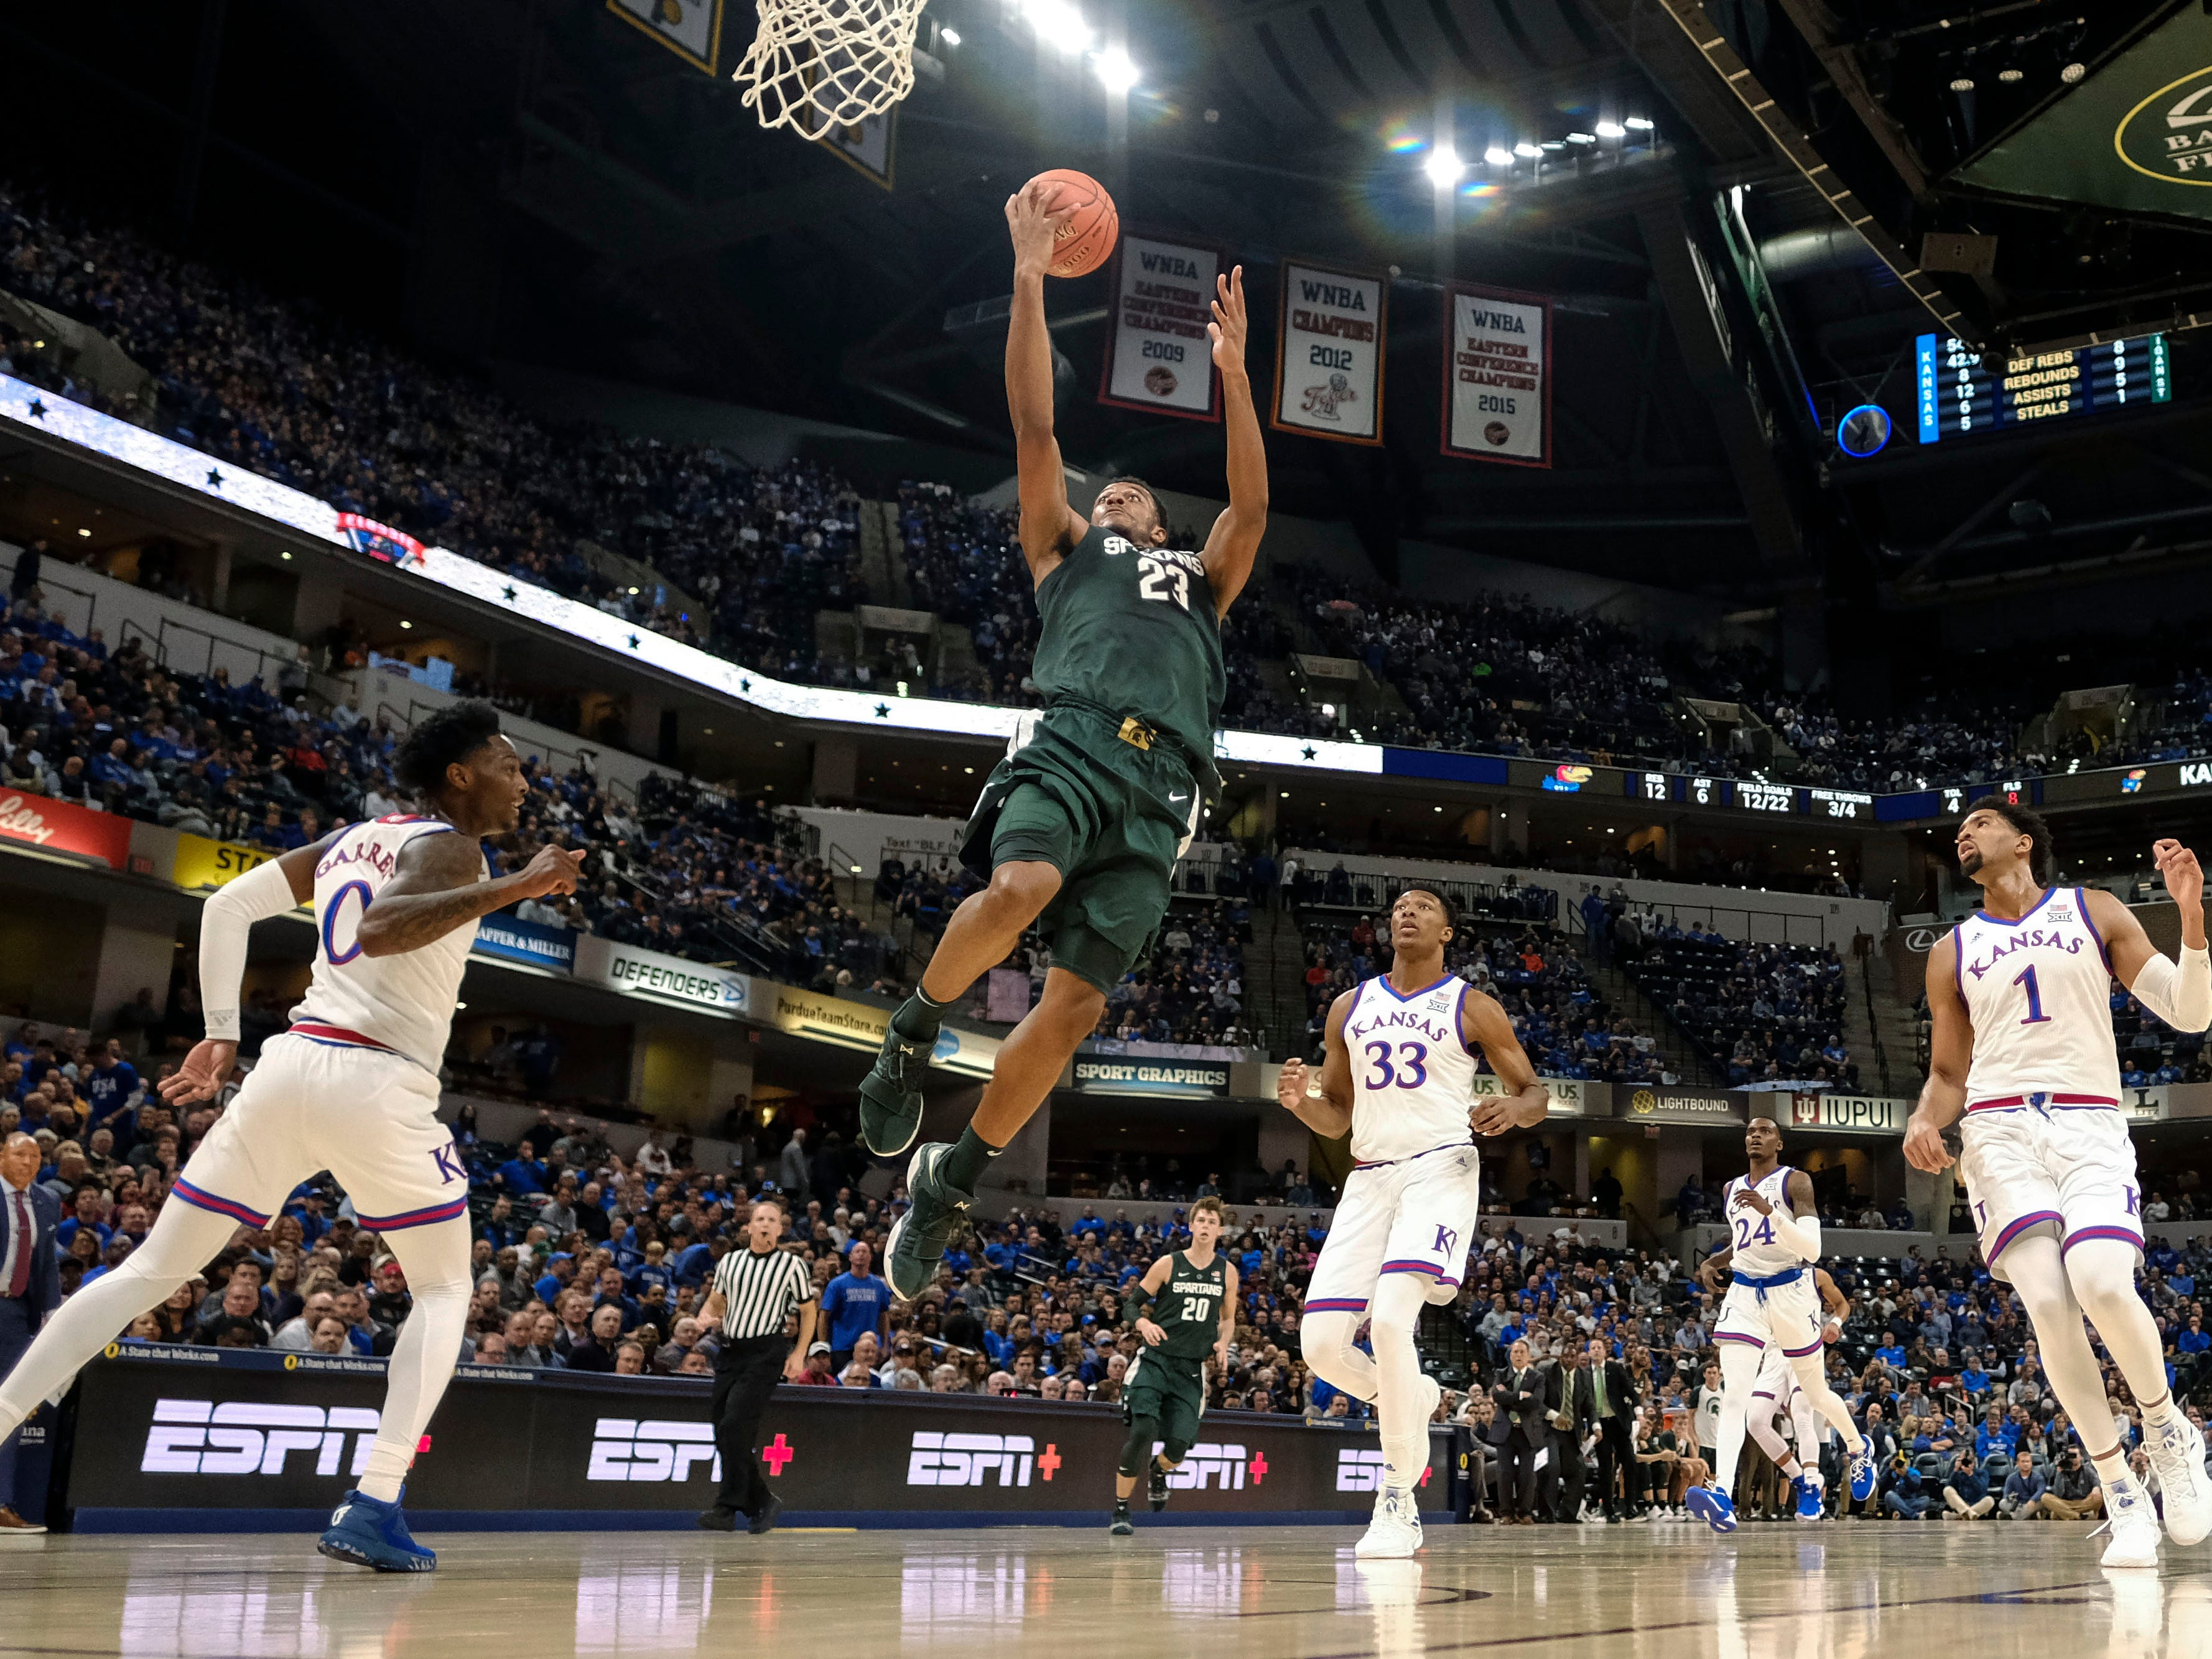 Michigan State forward Xavier Tillman (23) goes to the basket in front of Kansas defenders Marcus Garrett (0), David McCormack (33) and Dedric Lawson (1) during the first half of an NCAA college basketball game.